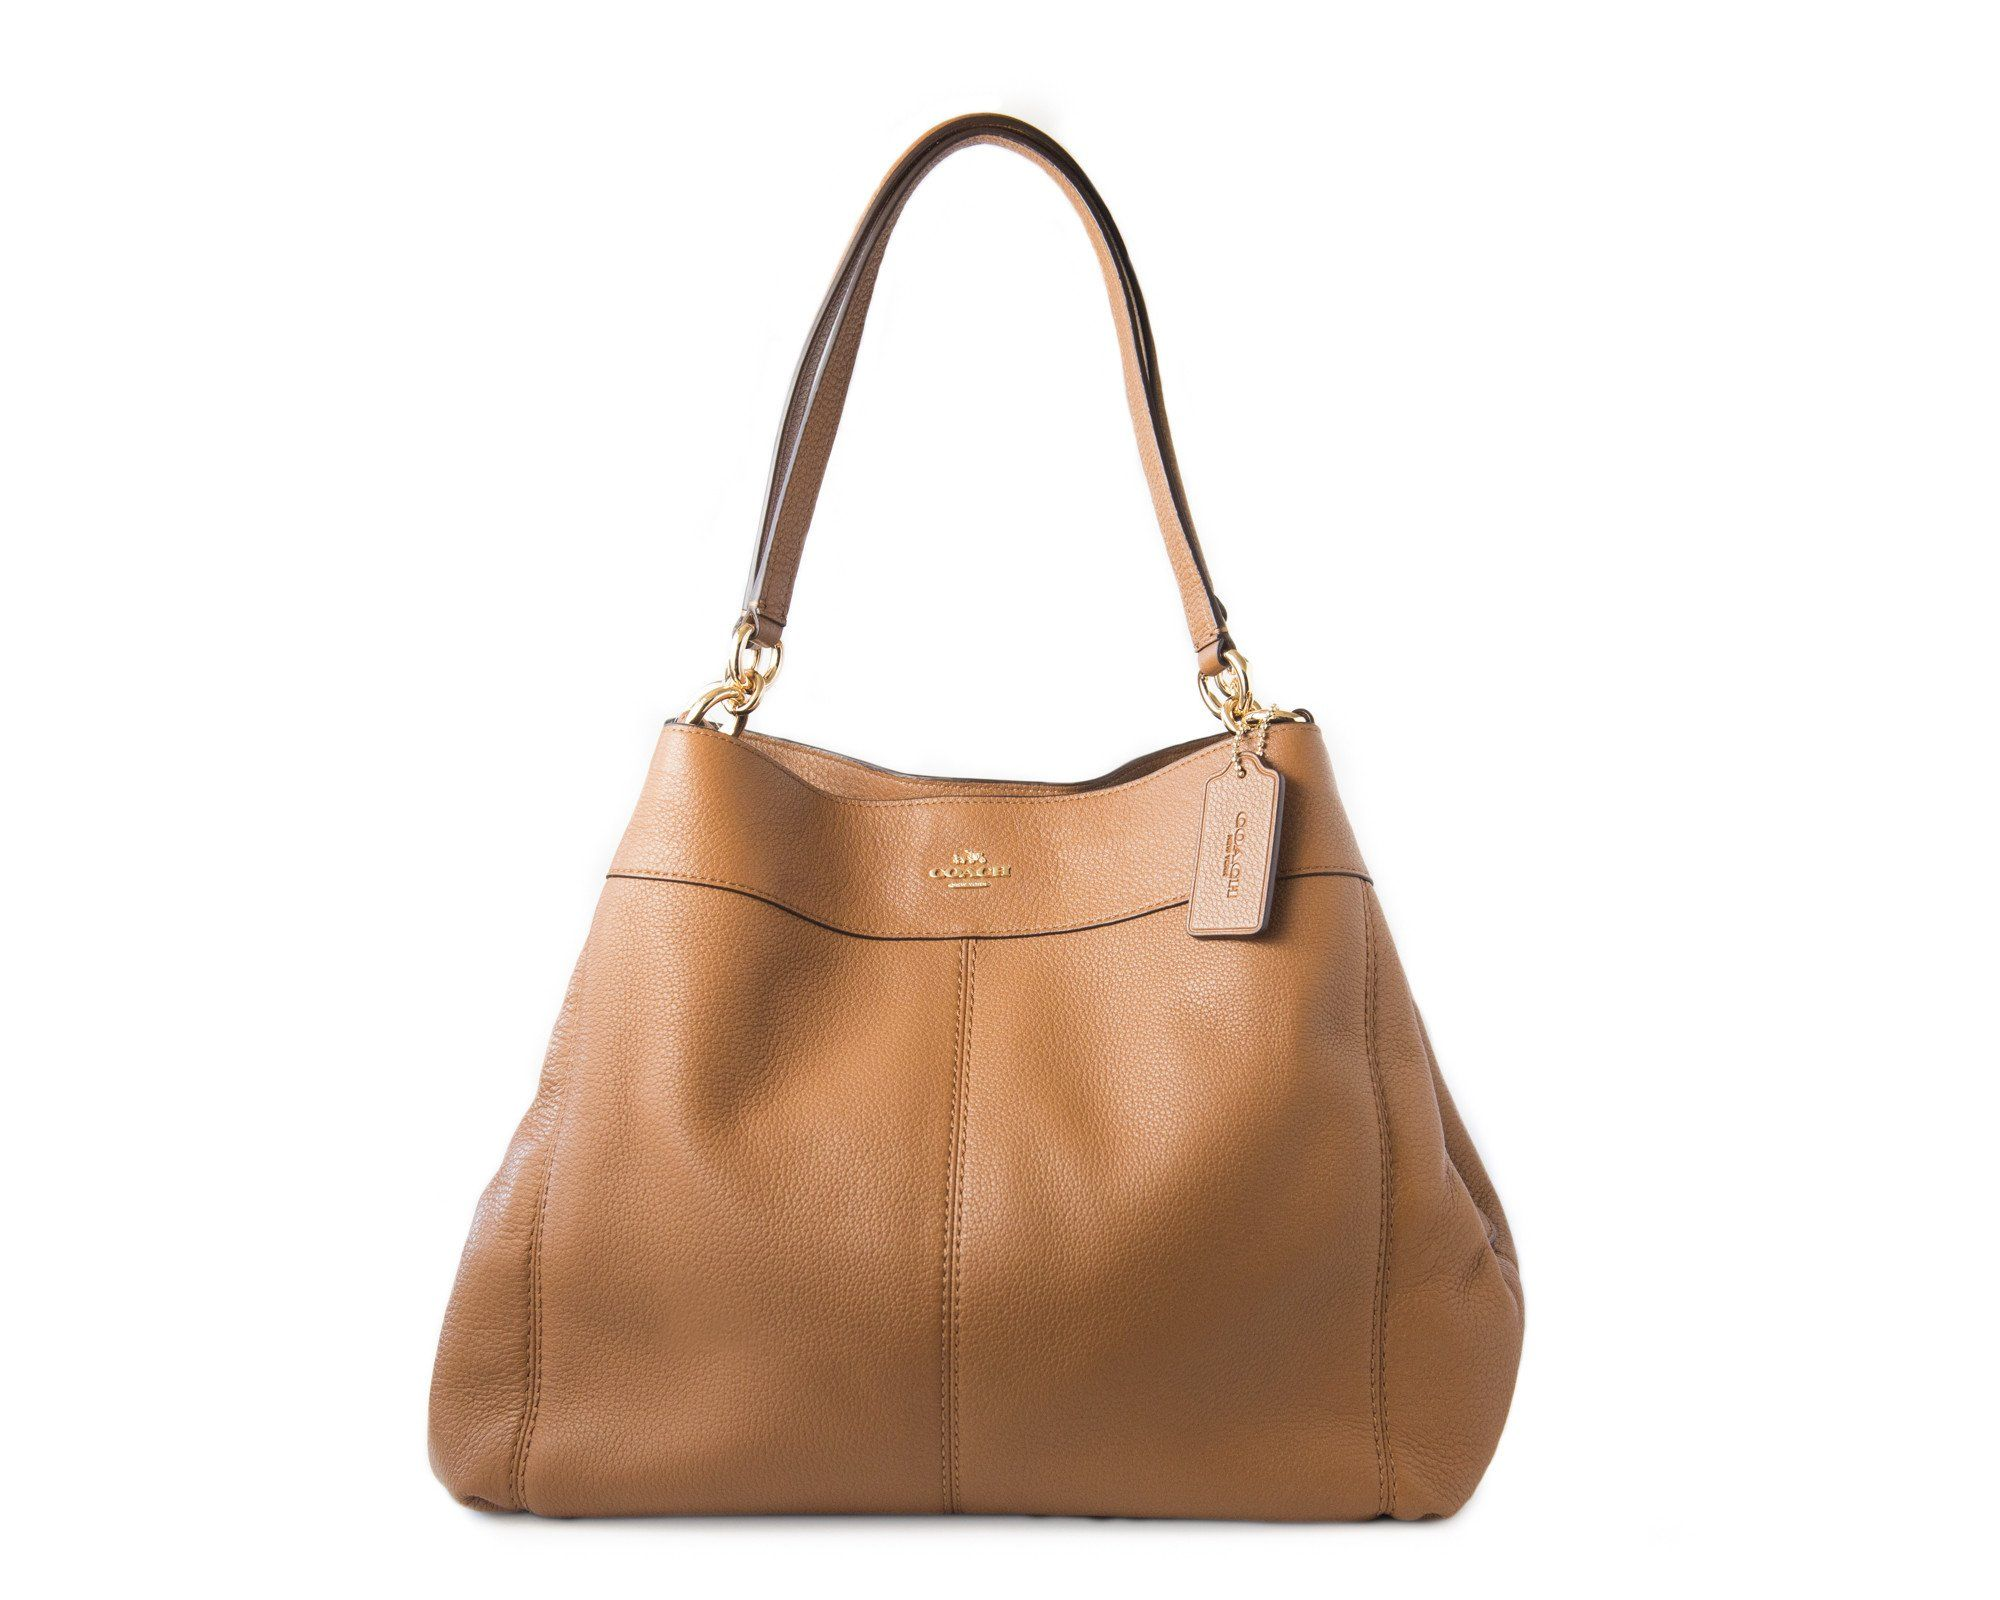 5c845668305 Lexy Shoulder Bag In Pebble Leather (Coach F57545) Imitation Gold Saddle